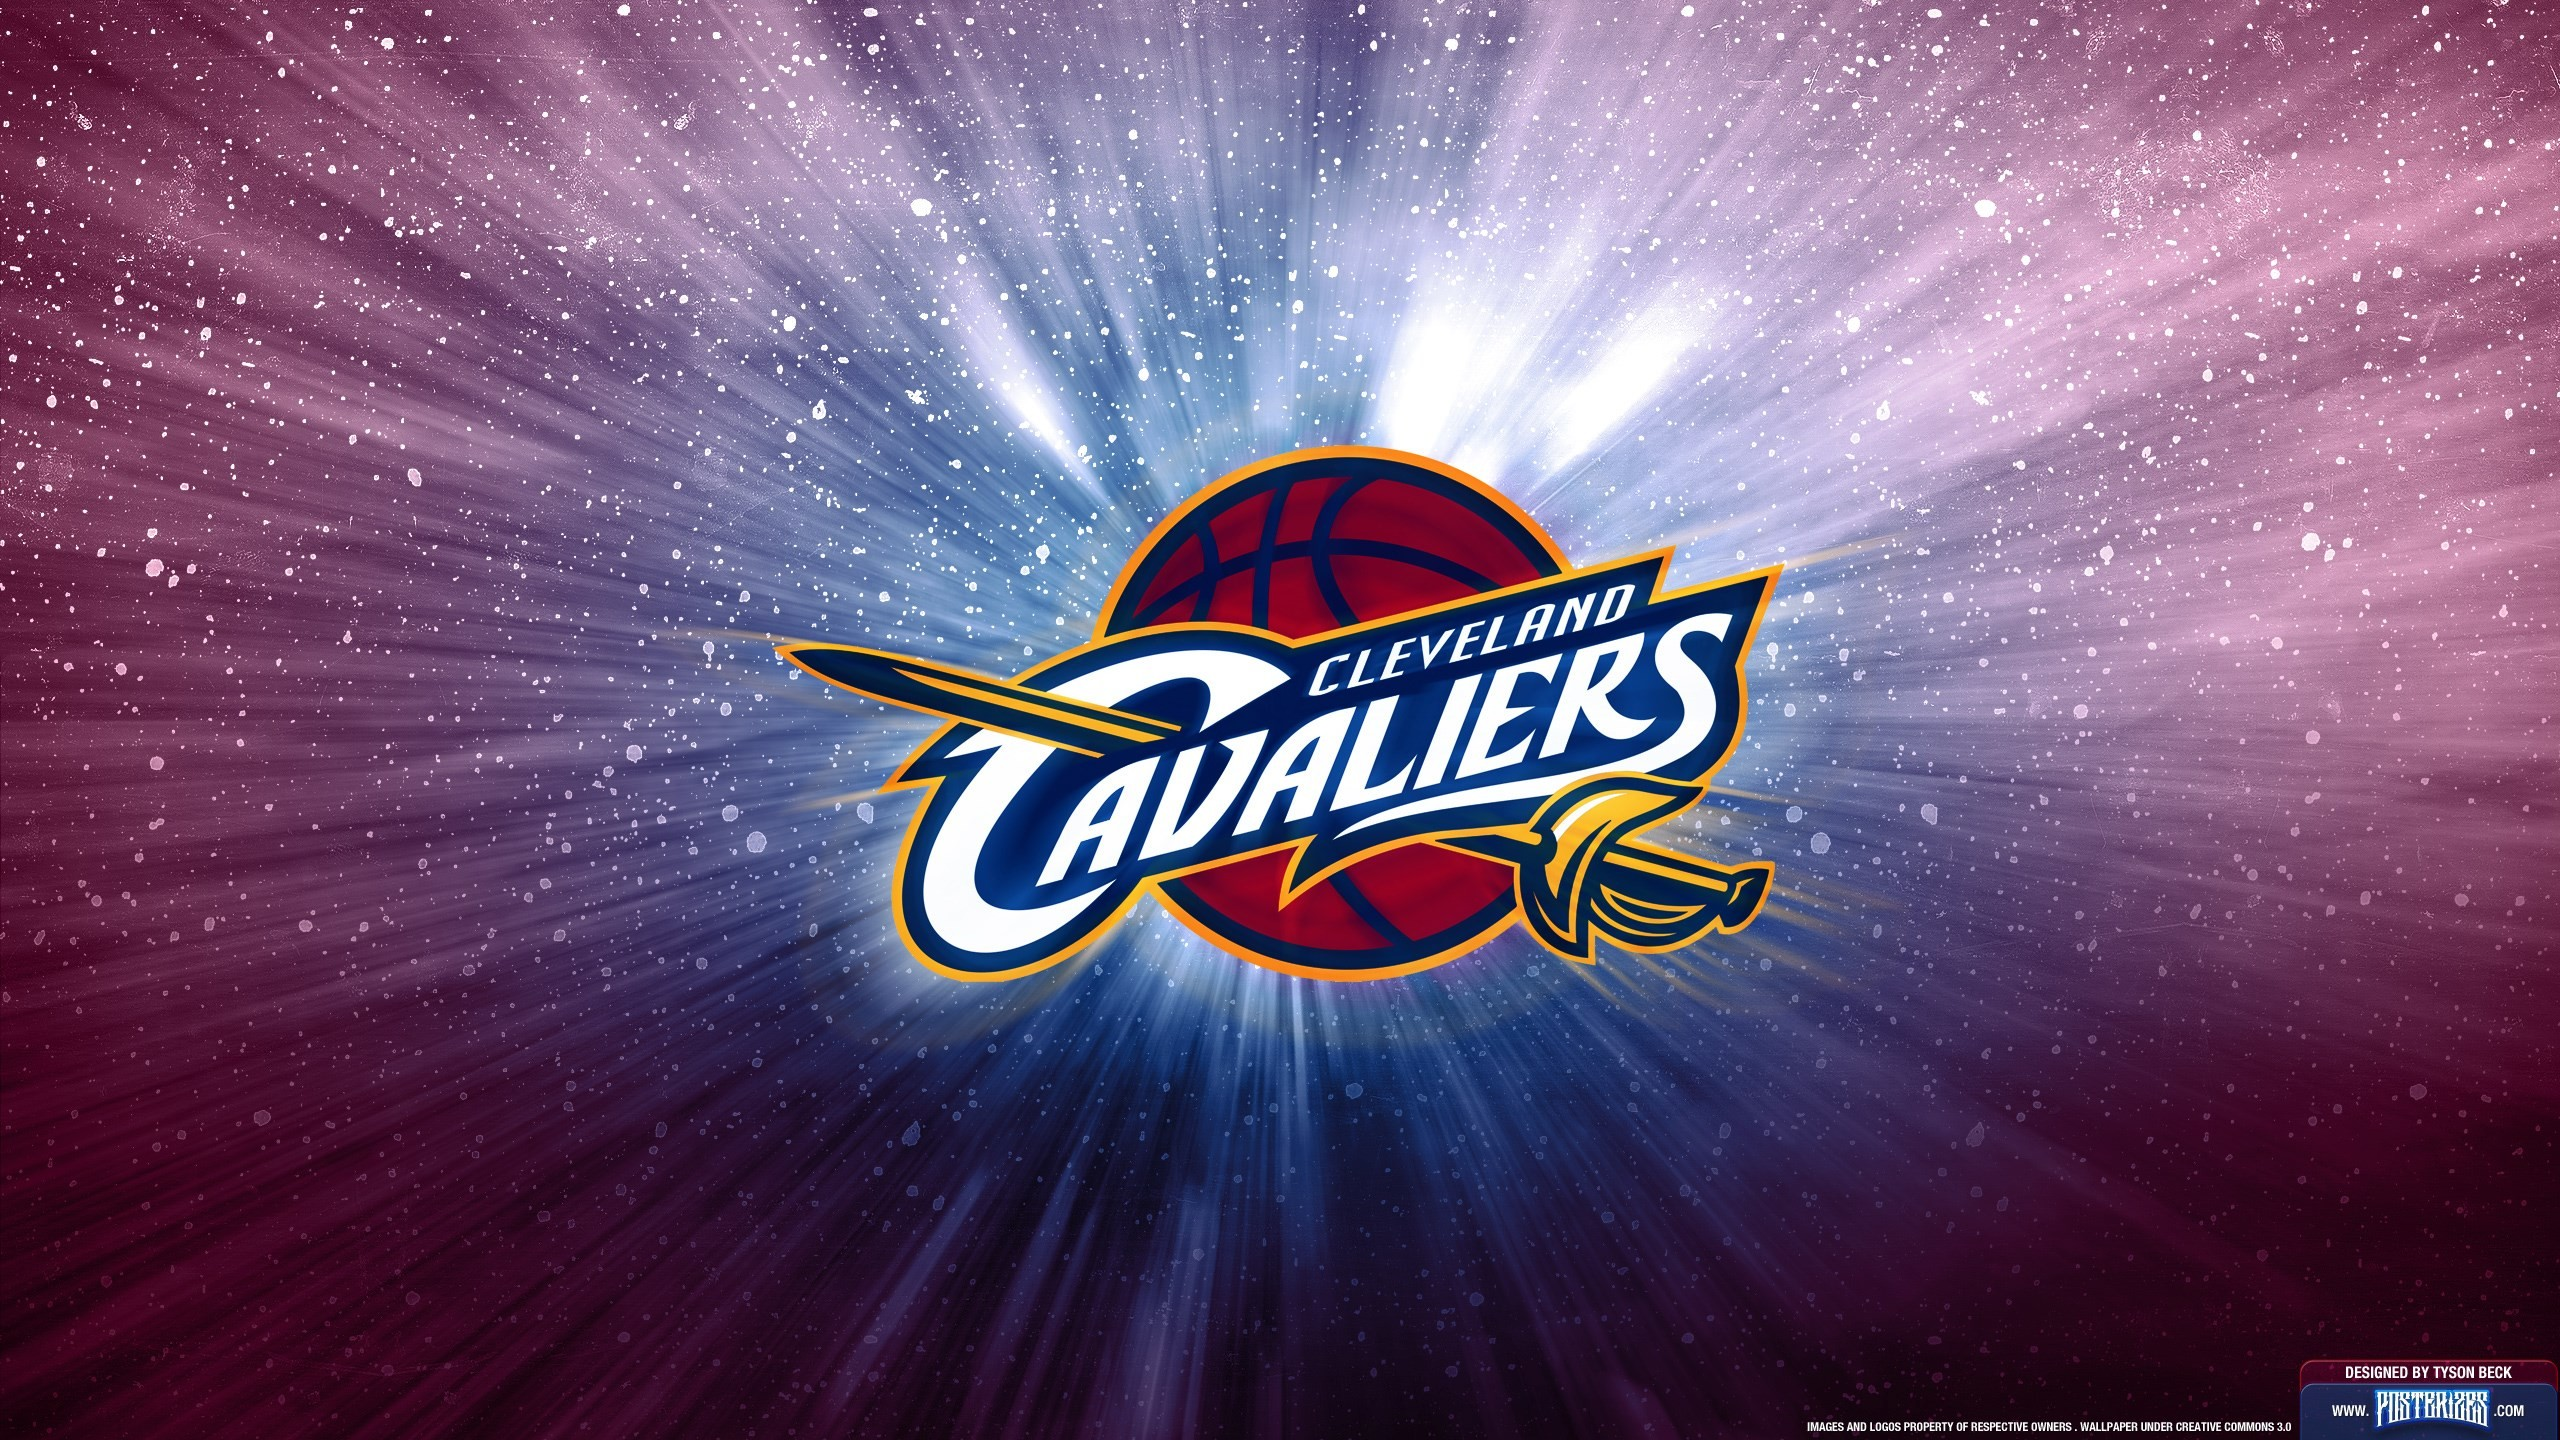 #1522821, cleveland cavaliers category – Cool cleveland cavaliers backround